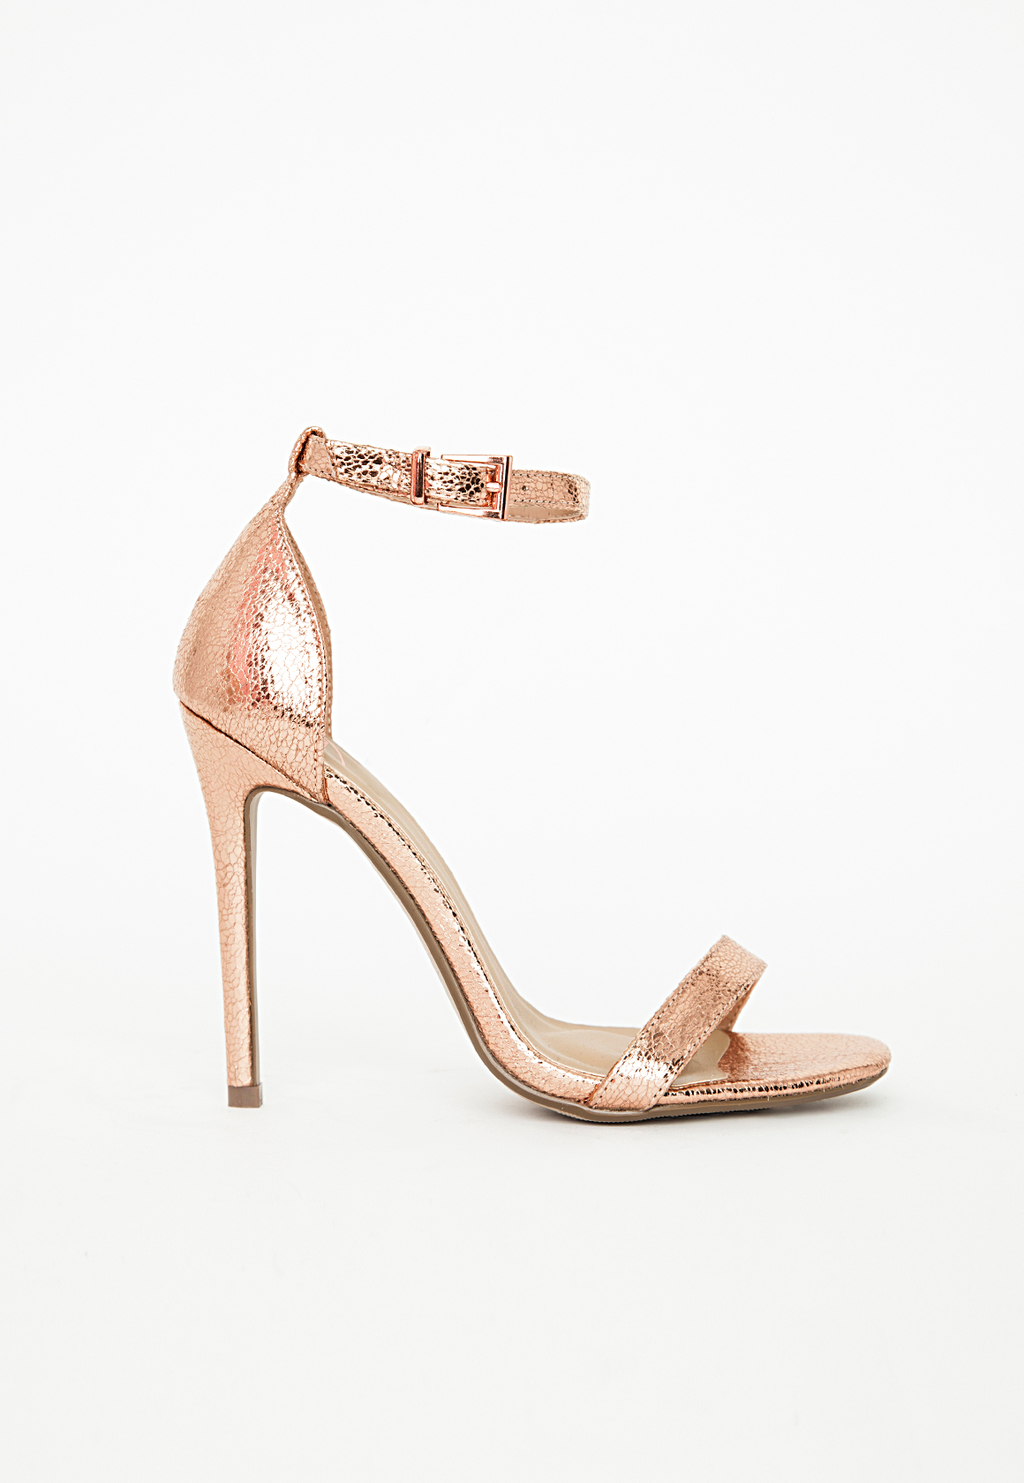 Barely There Ankle Strap Sandal Rose Gold Metalic, Red - predominant colour: gold; occasions: evening, occasion; material: faux leather; heel height: high; ankle detail: ankle strap; heel: stiletto; toe: open toe/peeptoe; style: strappy; finish: metallic; pattern: plain; season: s/s 2015